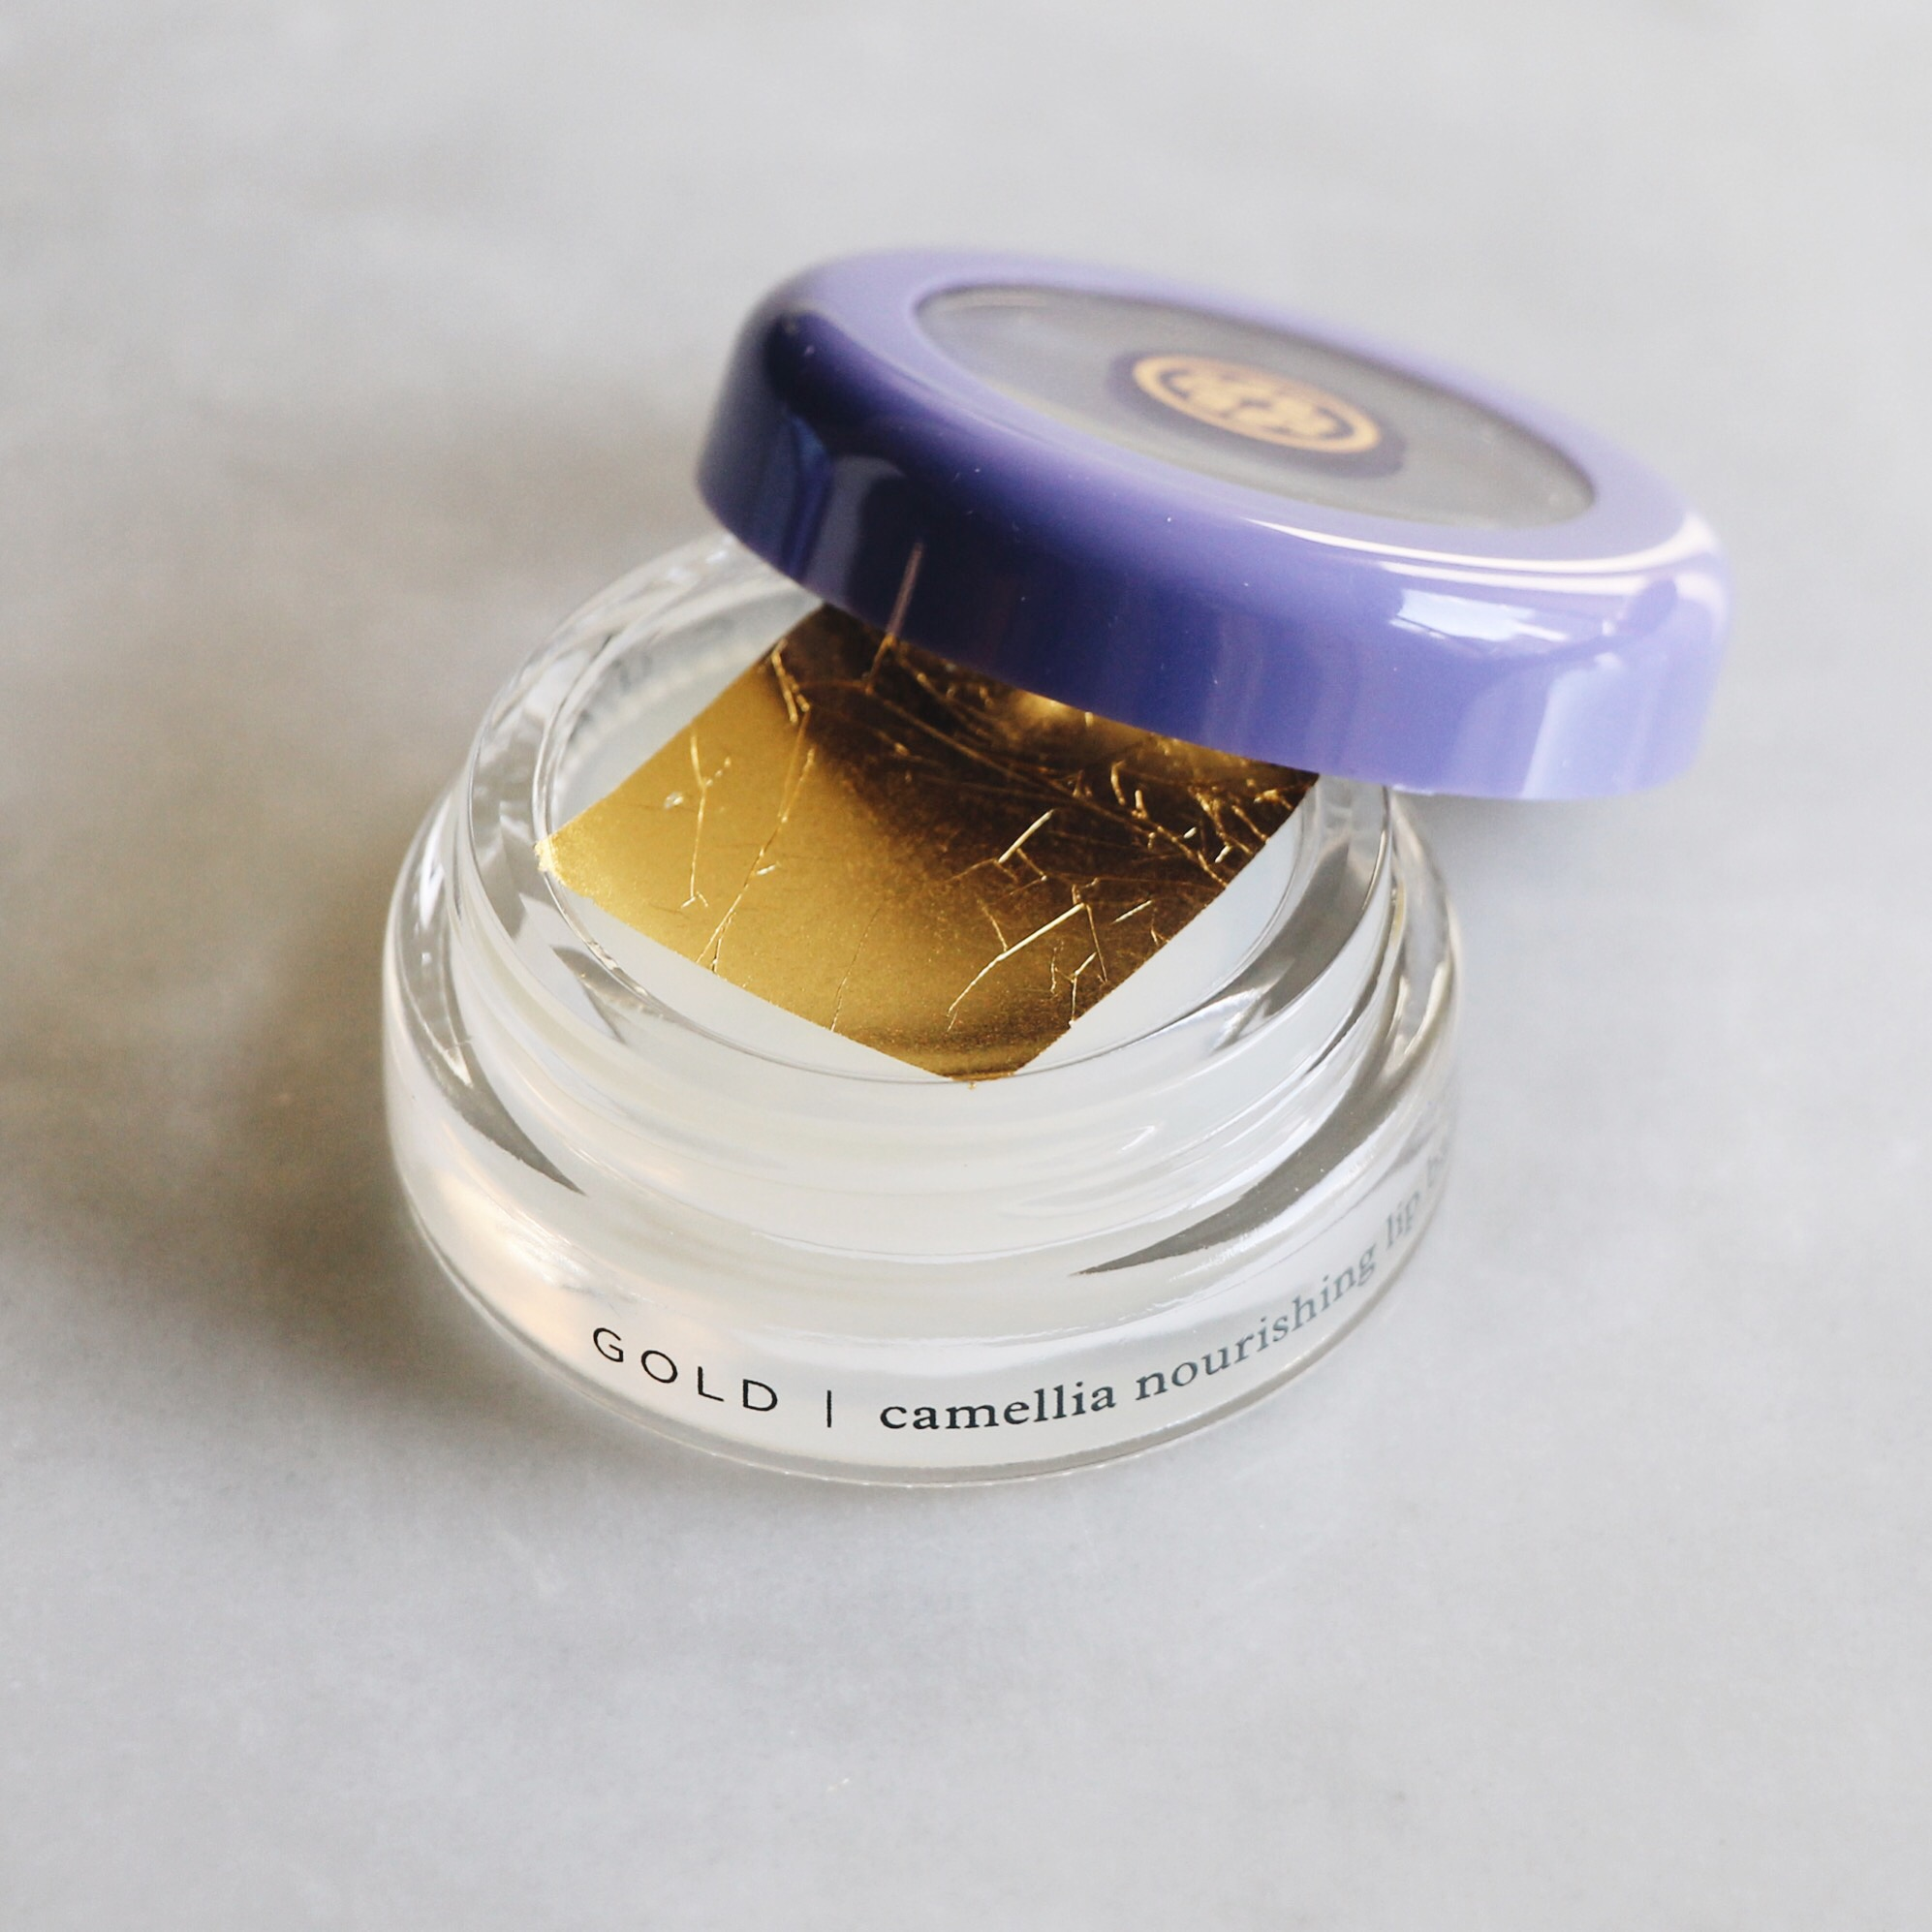 Tatcha Gold Camellia Nourishing Lip Balm, Tatcha Camellia Lip Balm, Tatcha Gold Camellia Lip Balm, Tatcha Lip Balm Review, Tatcha Gold Camellia Lip Balm Review, Tatcha, Tatcha Samples, Tatcha Gold Leaf Lip Balm, Gold Leaf Lip Balm, 24k Gold Lip Balm, 24 Karat Gold Lip Balm